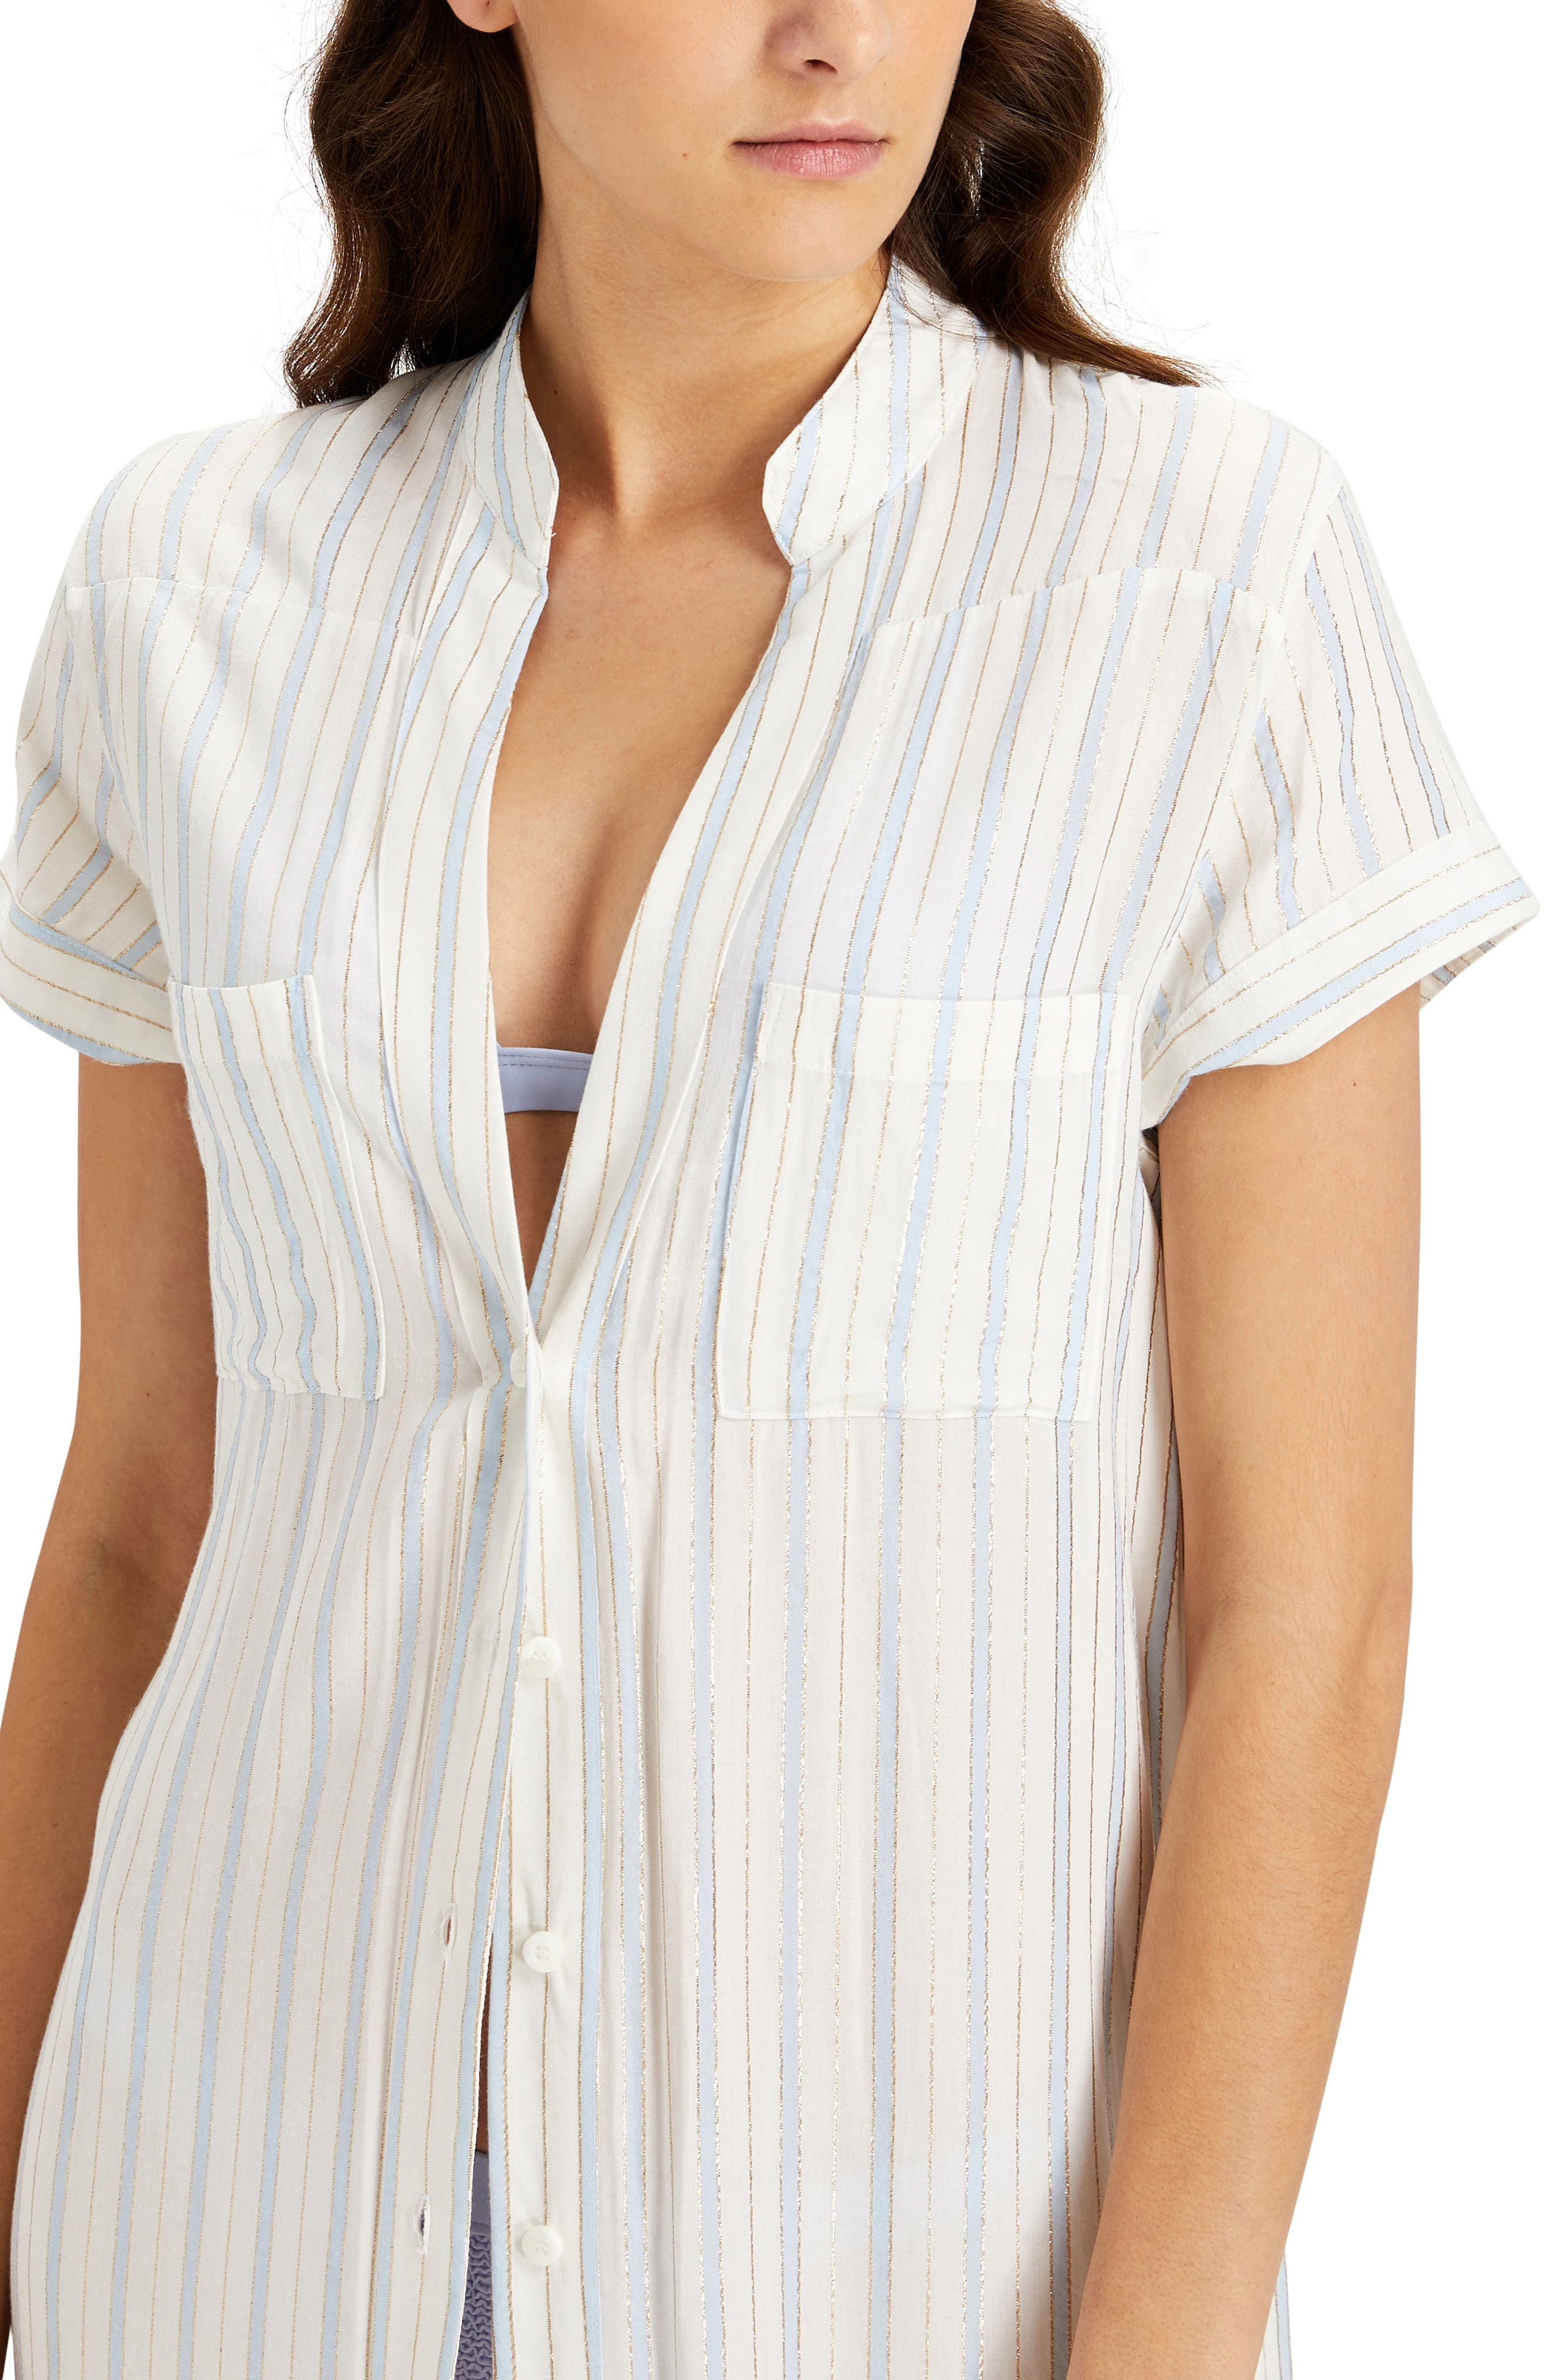 Alternate Image 3  - Onia Kim Stripe Button Down Cover-Up Maxi Dress